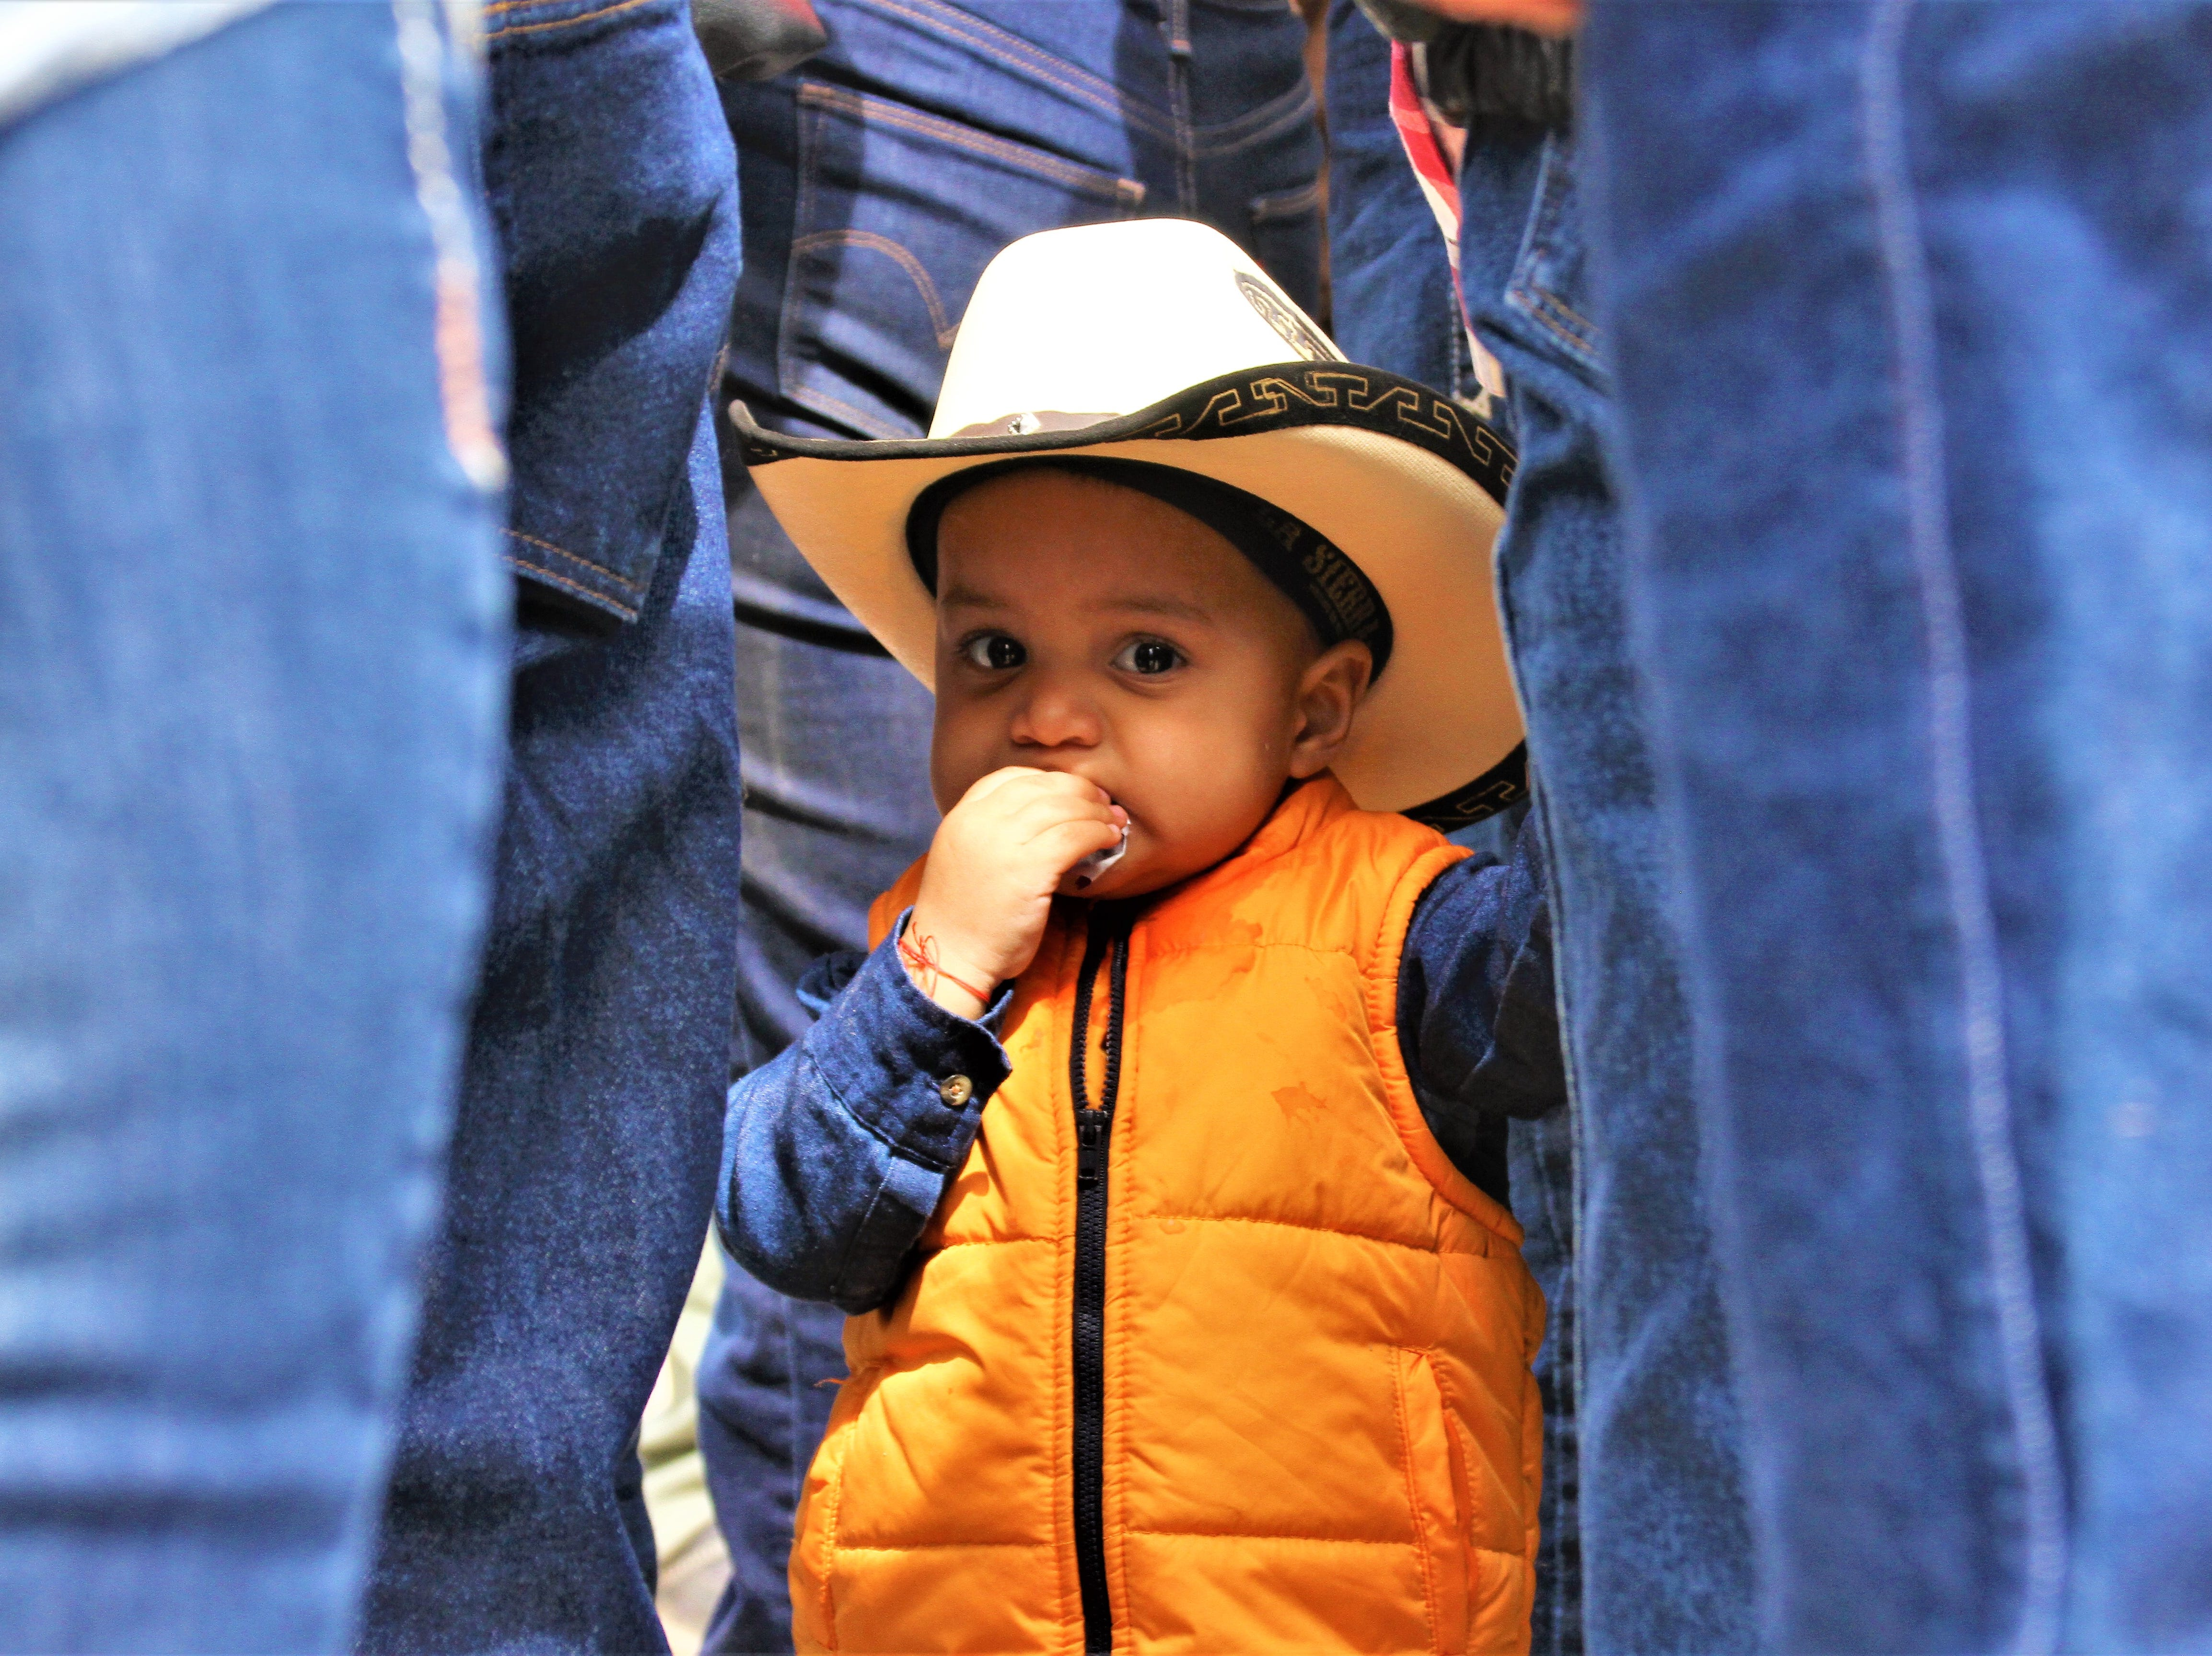 Between rows of legs - whose owners watched the fiesta performances - stood 1-year old Eiden Gracia.